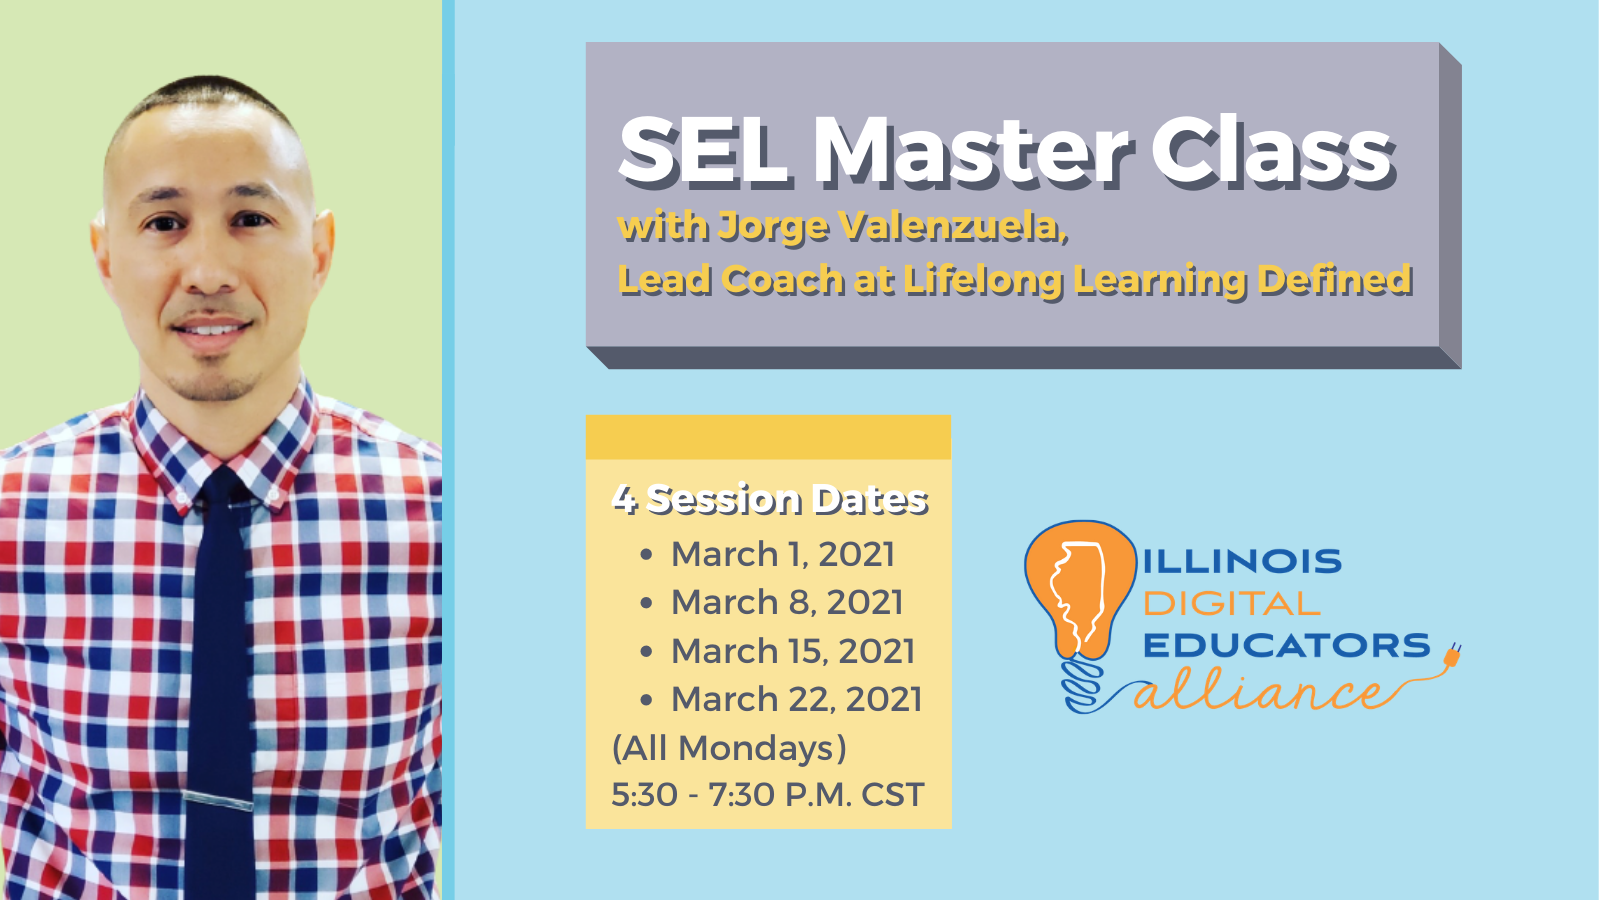 SEL Master Class